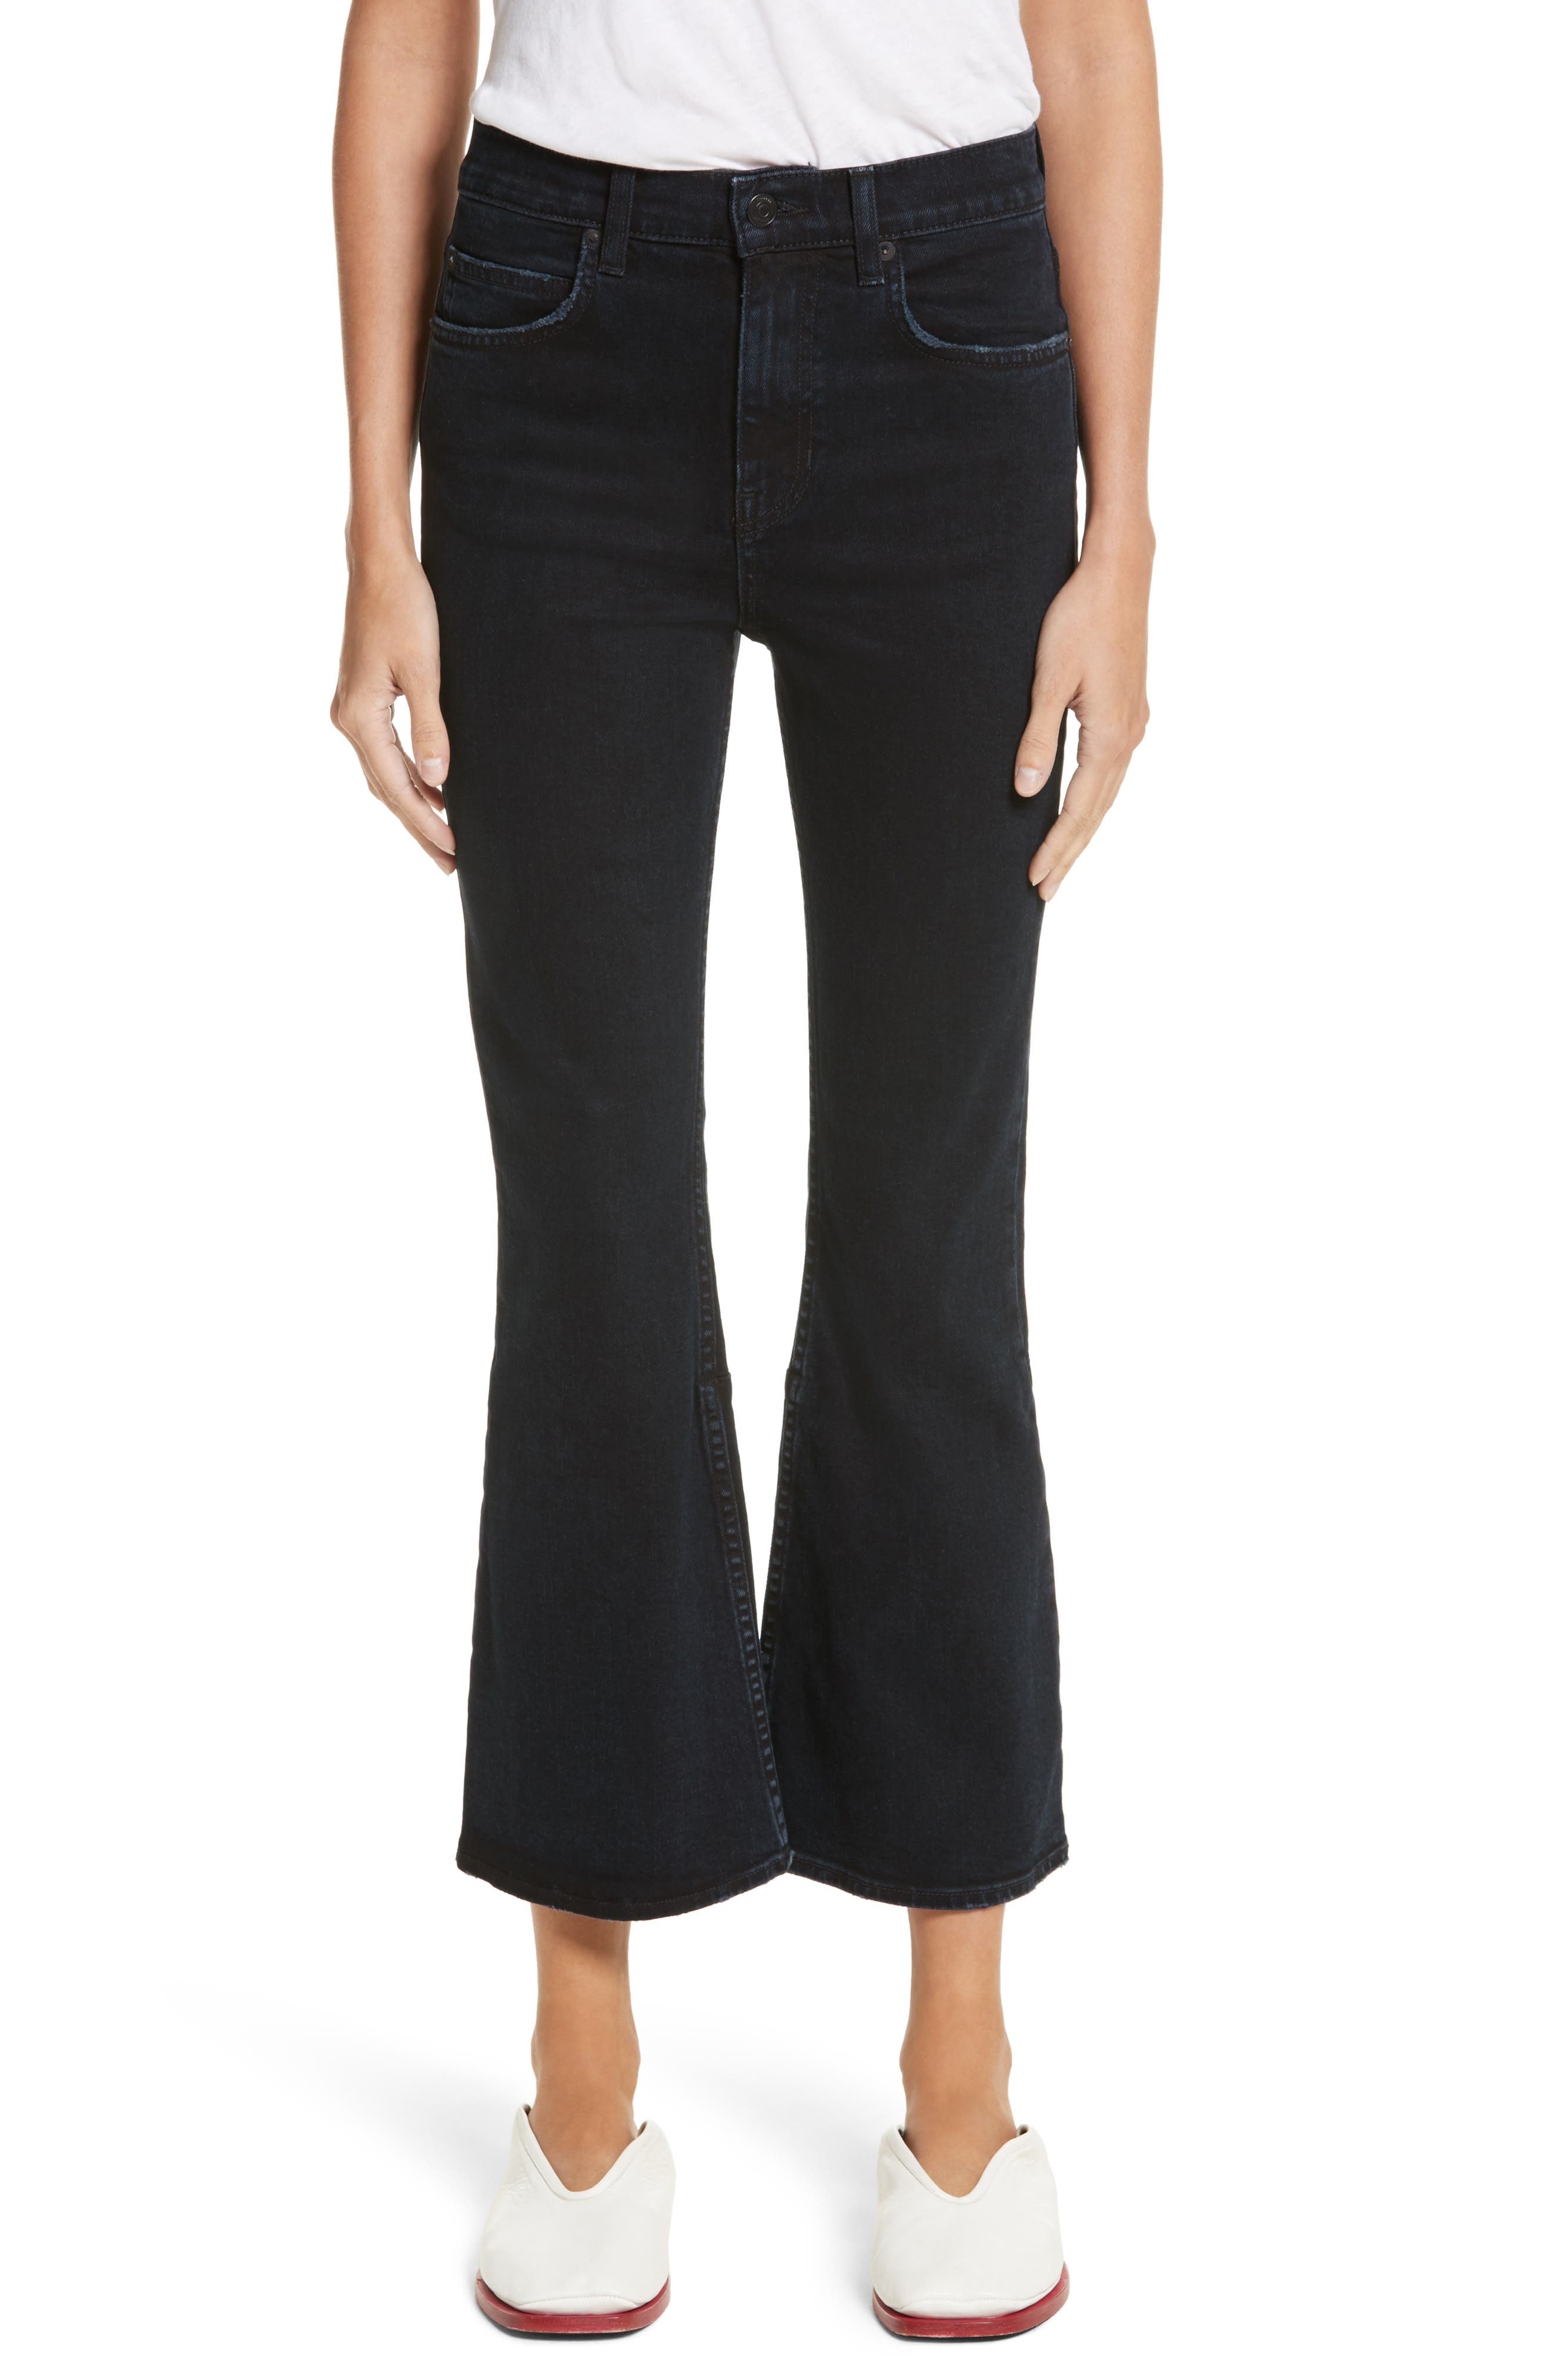 PSWL Crop Kick Flare Jeans,                         Main,                         color, 013